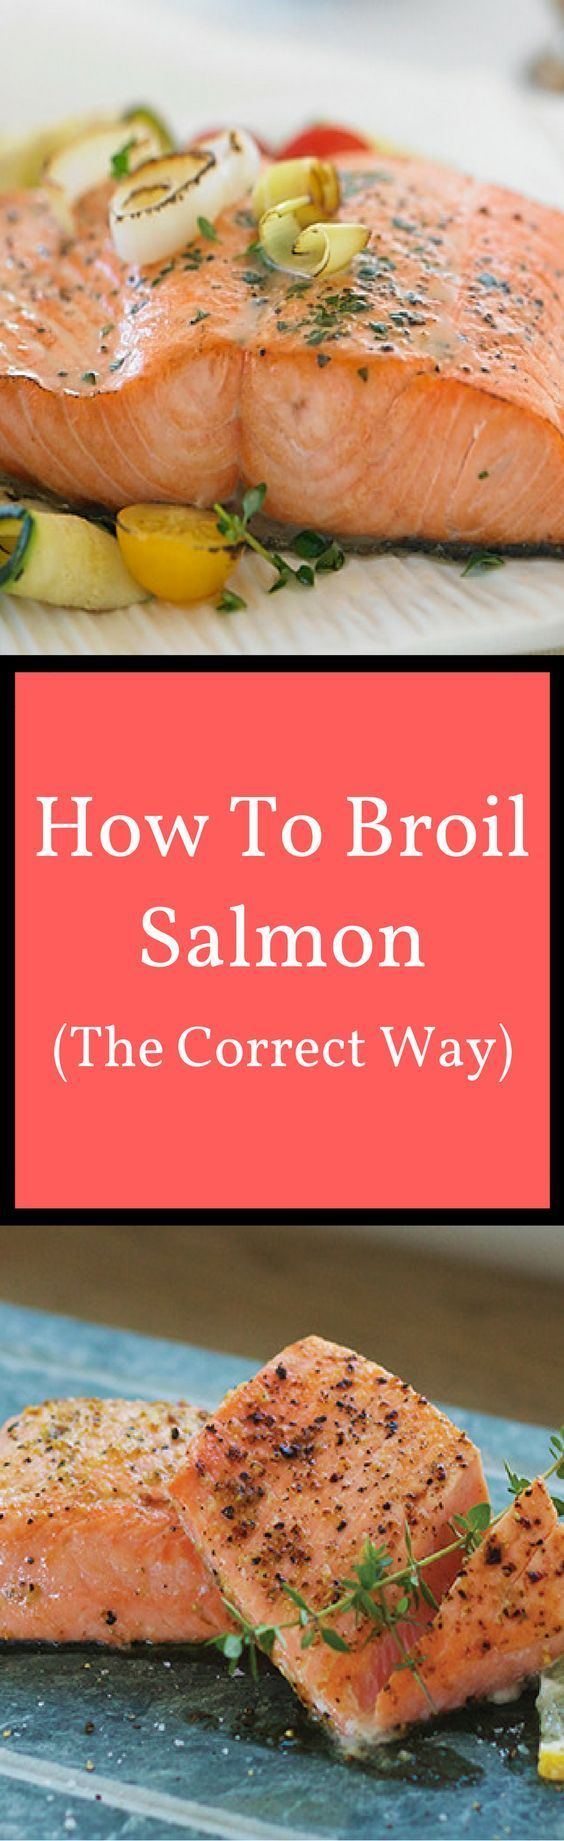 ~how To Broil Salmon~ Watch Our Short How To Video And Discover The Correct